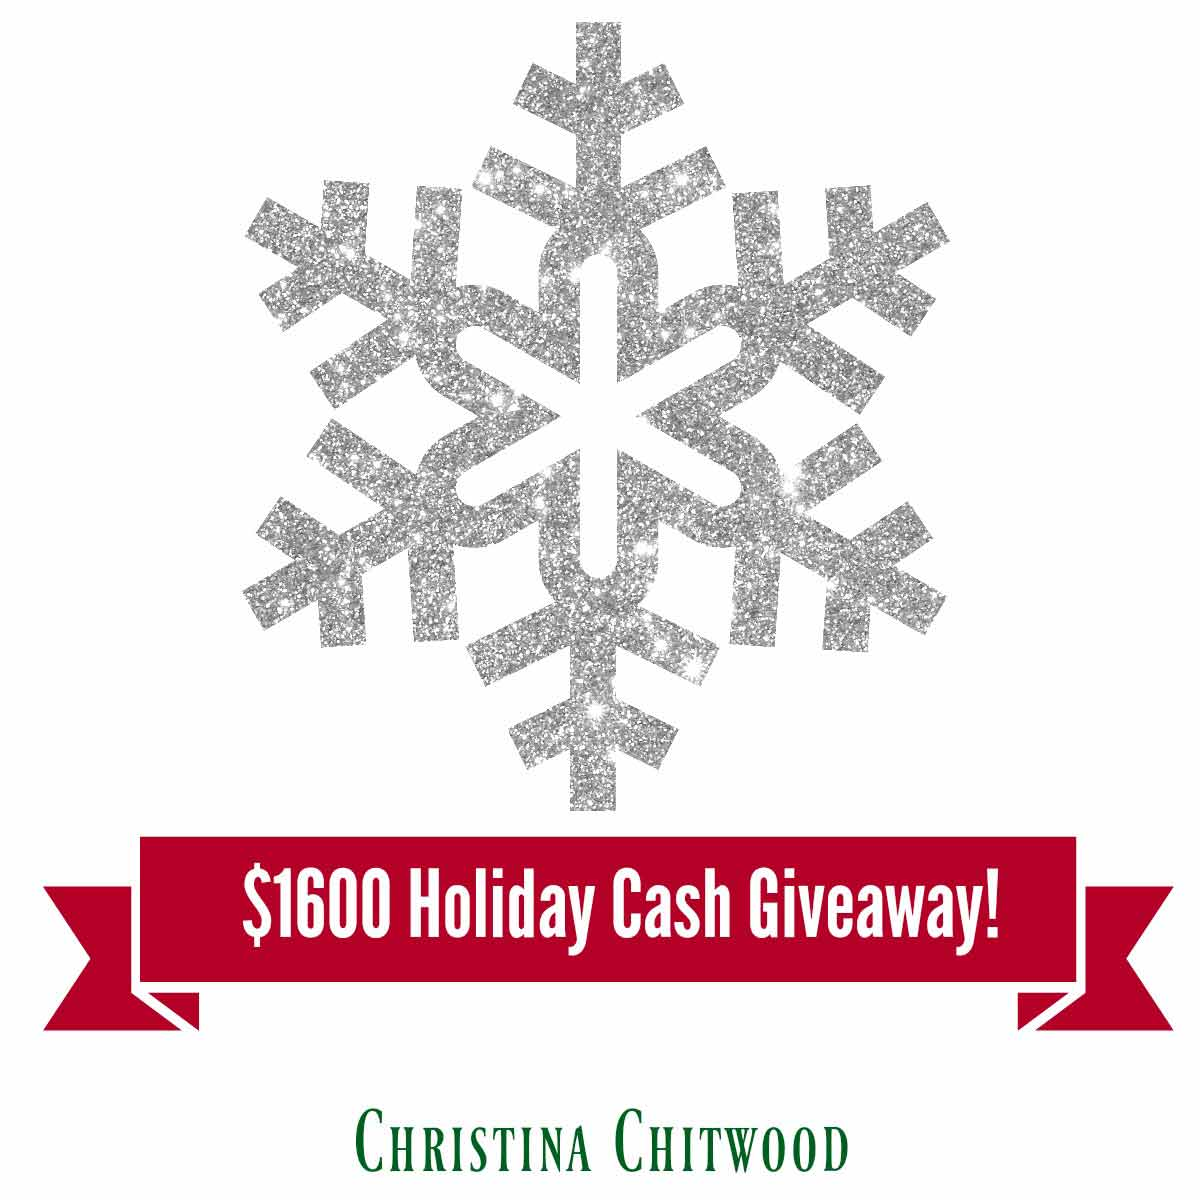 $1600 Holiday Cash Giveaway Christina Chitwood